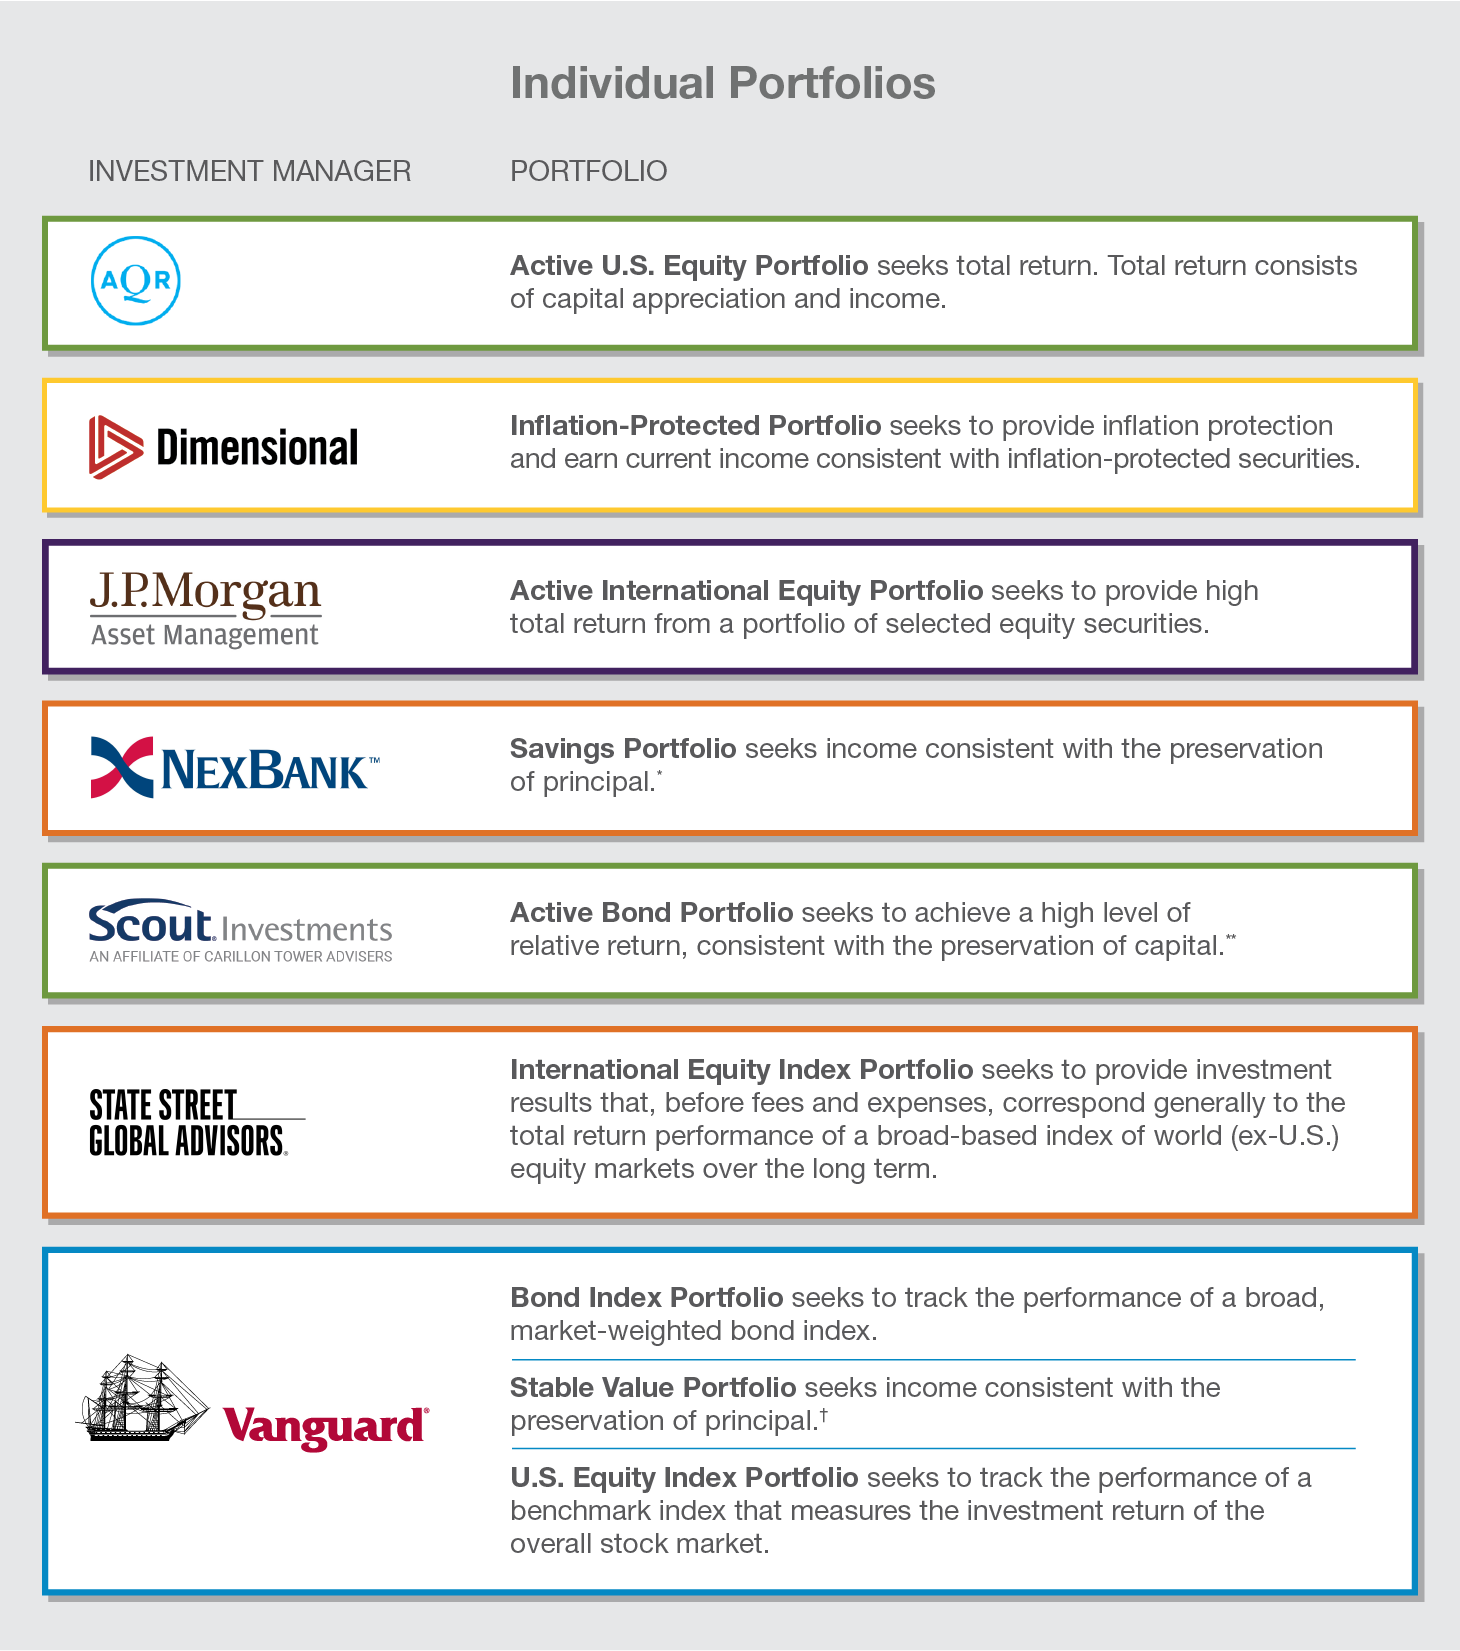 Investment_Portfolios_IN_730x853_FINAL.png